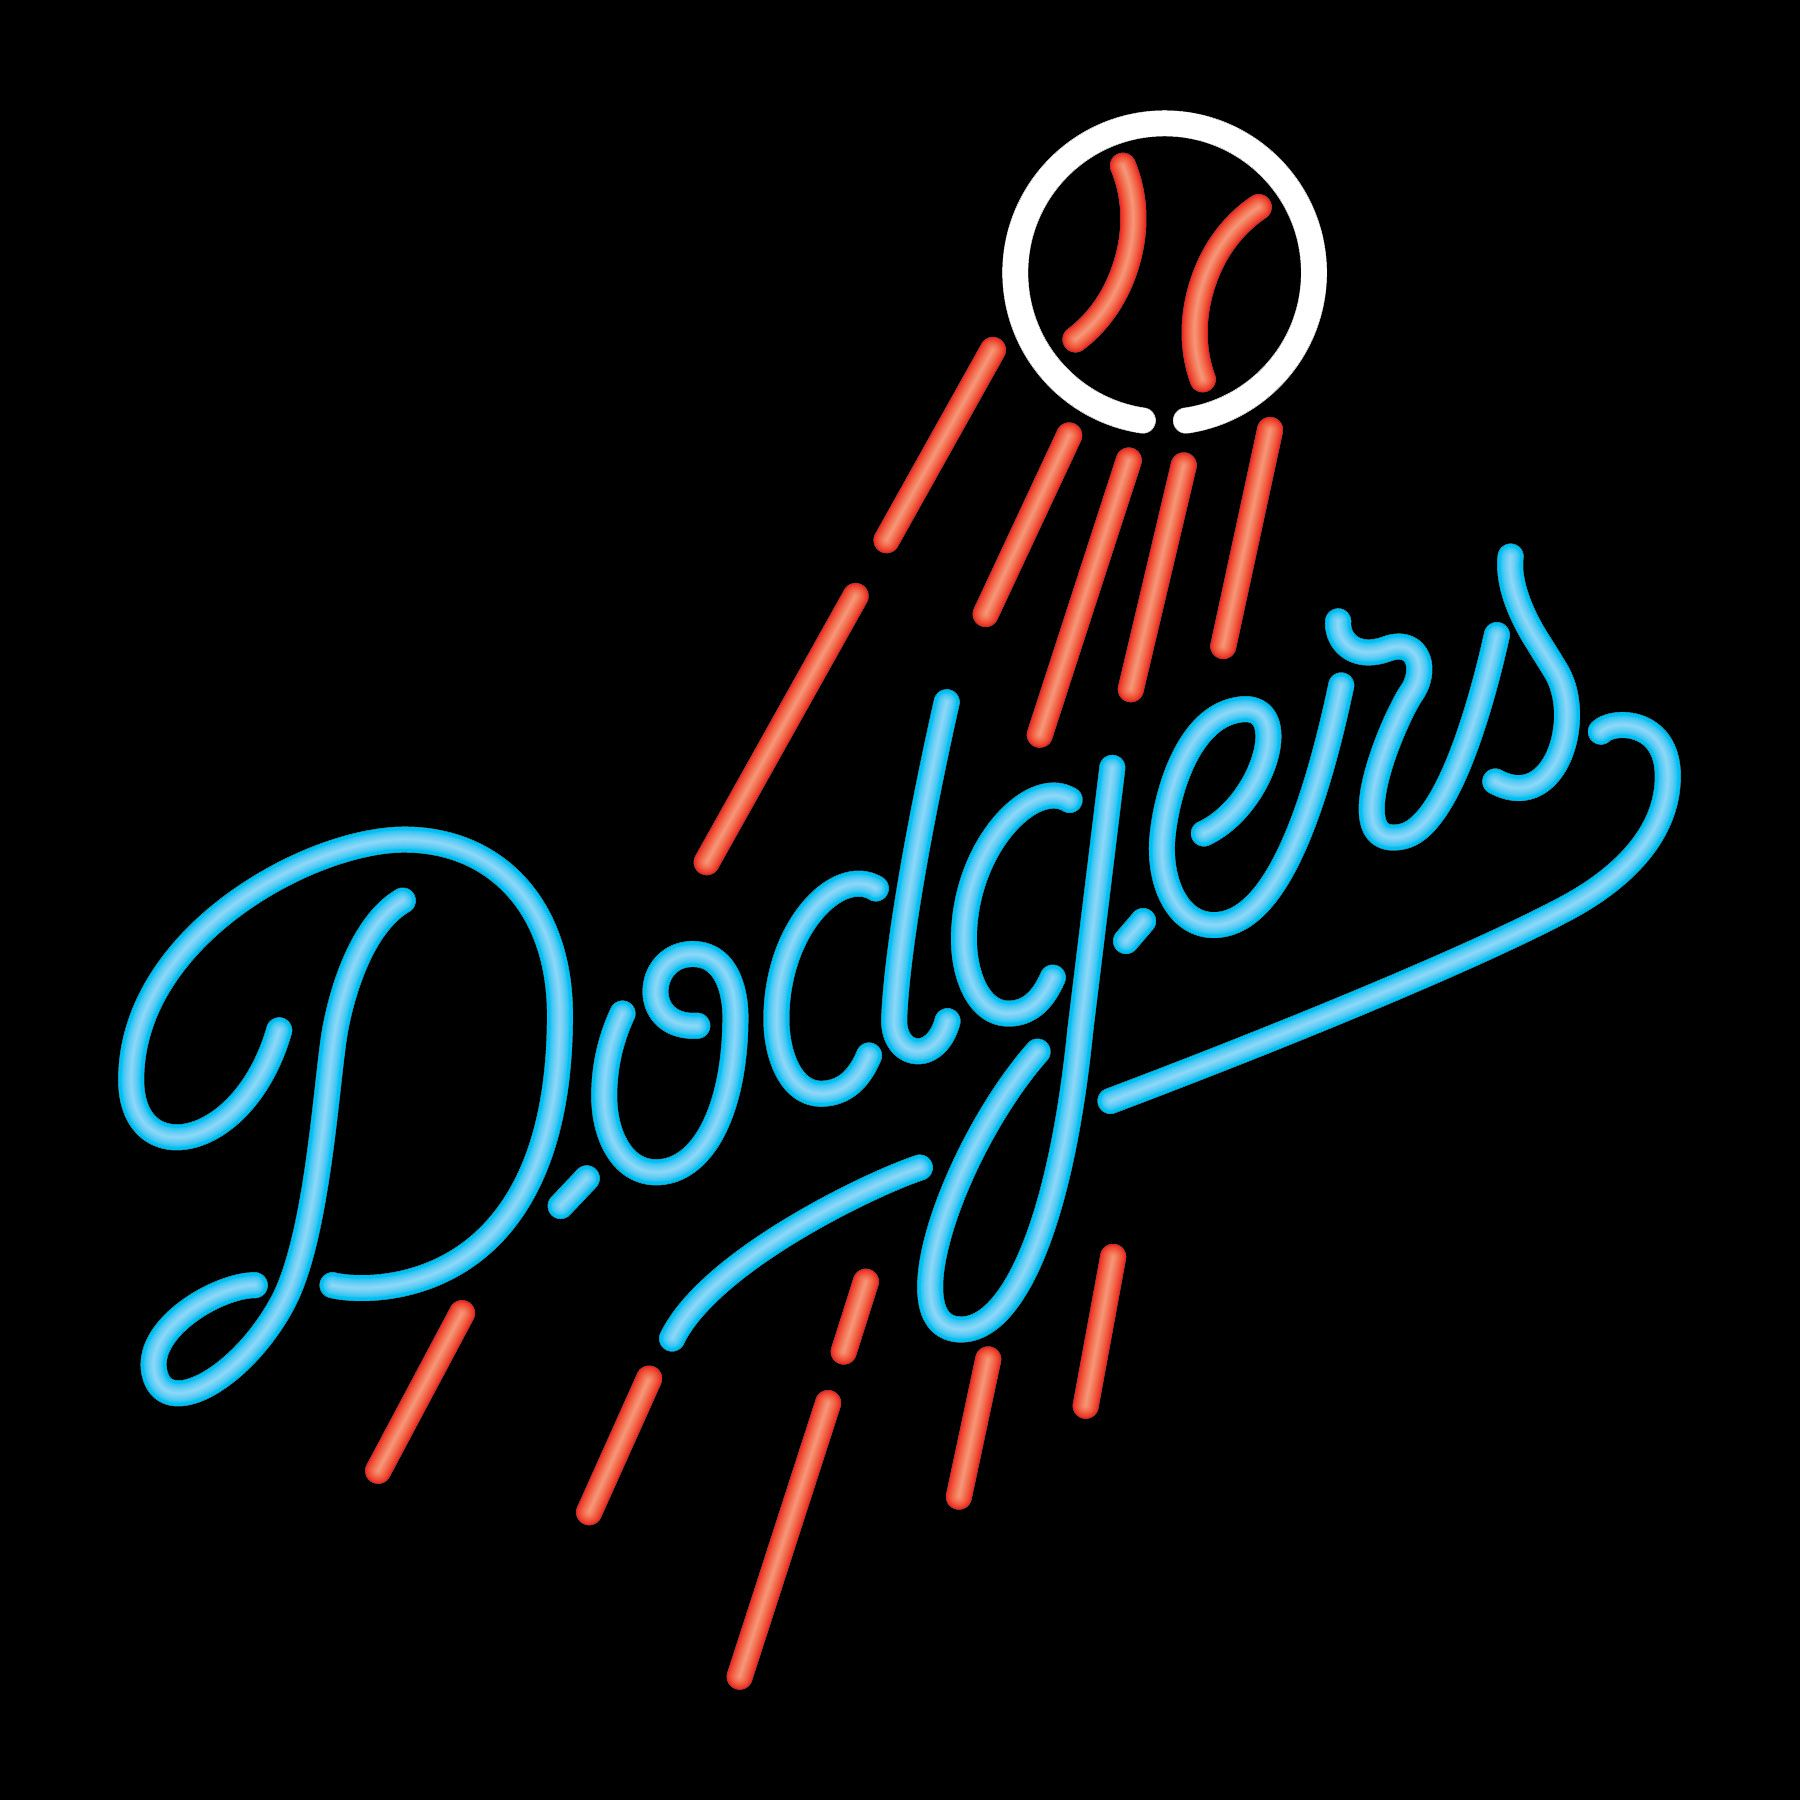 Los Angeles Dodgers Wallpapers (42 Wallpapers) - Adorable Wallpapers